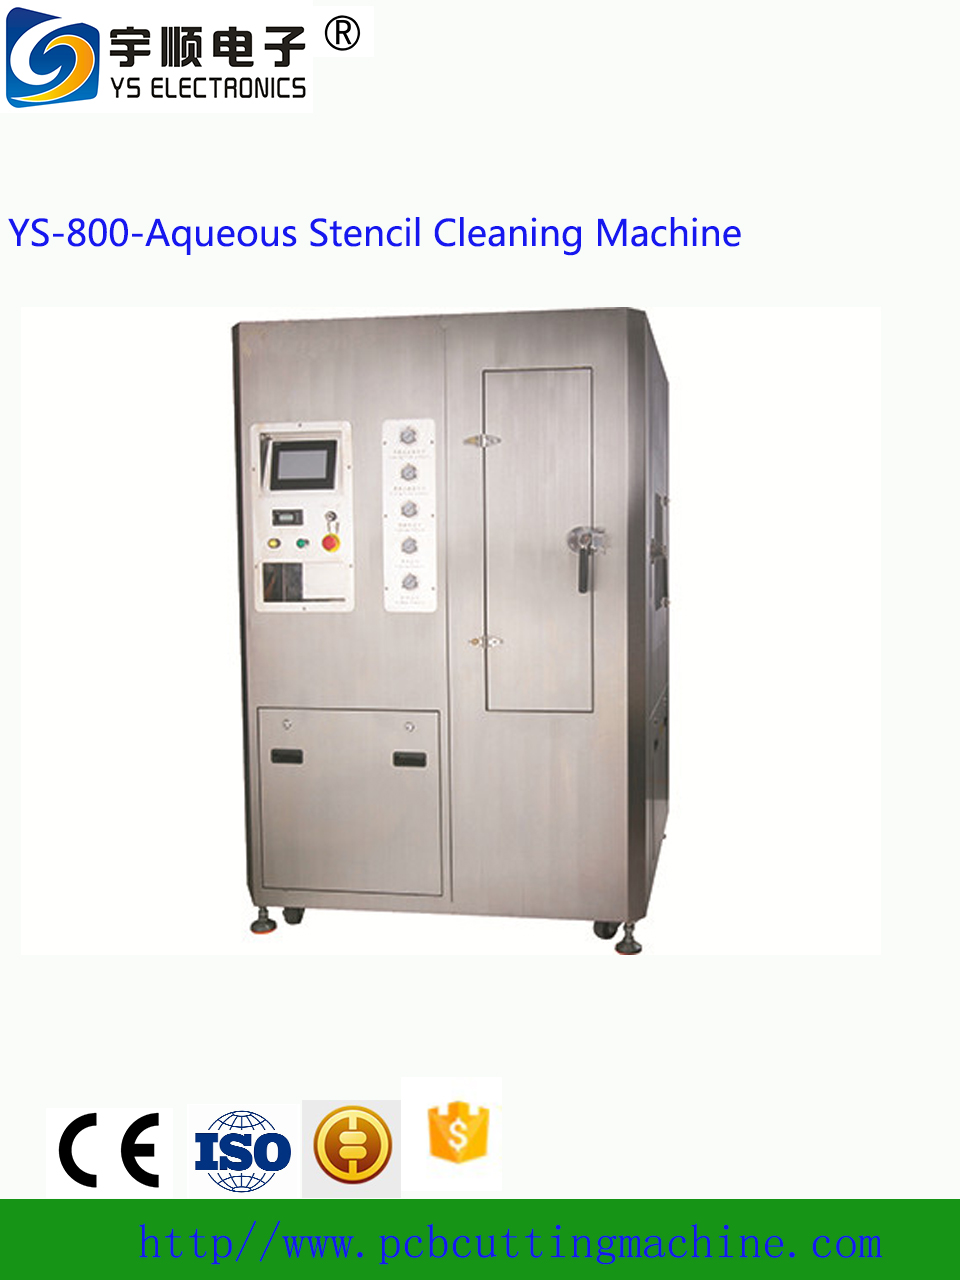 Aqueous Stencil Cleaning Machine SMT Full Pneumatic Automatic Stencil Cleaning Machine for SMT Stencil Cleaner